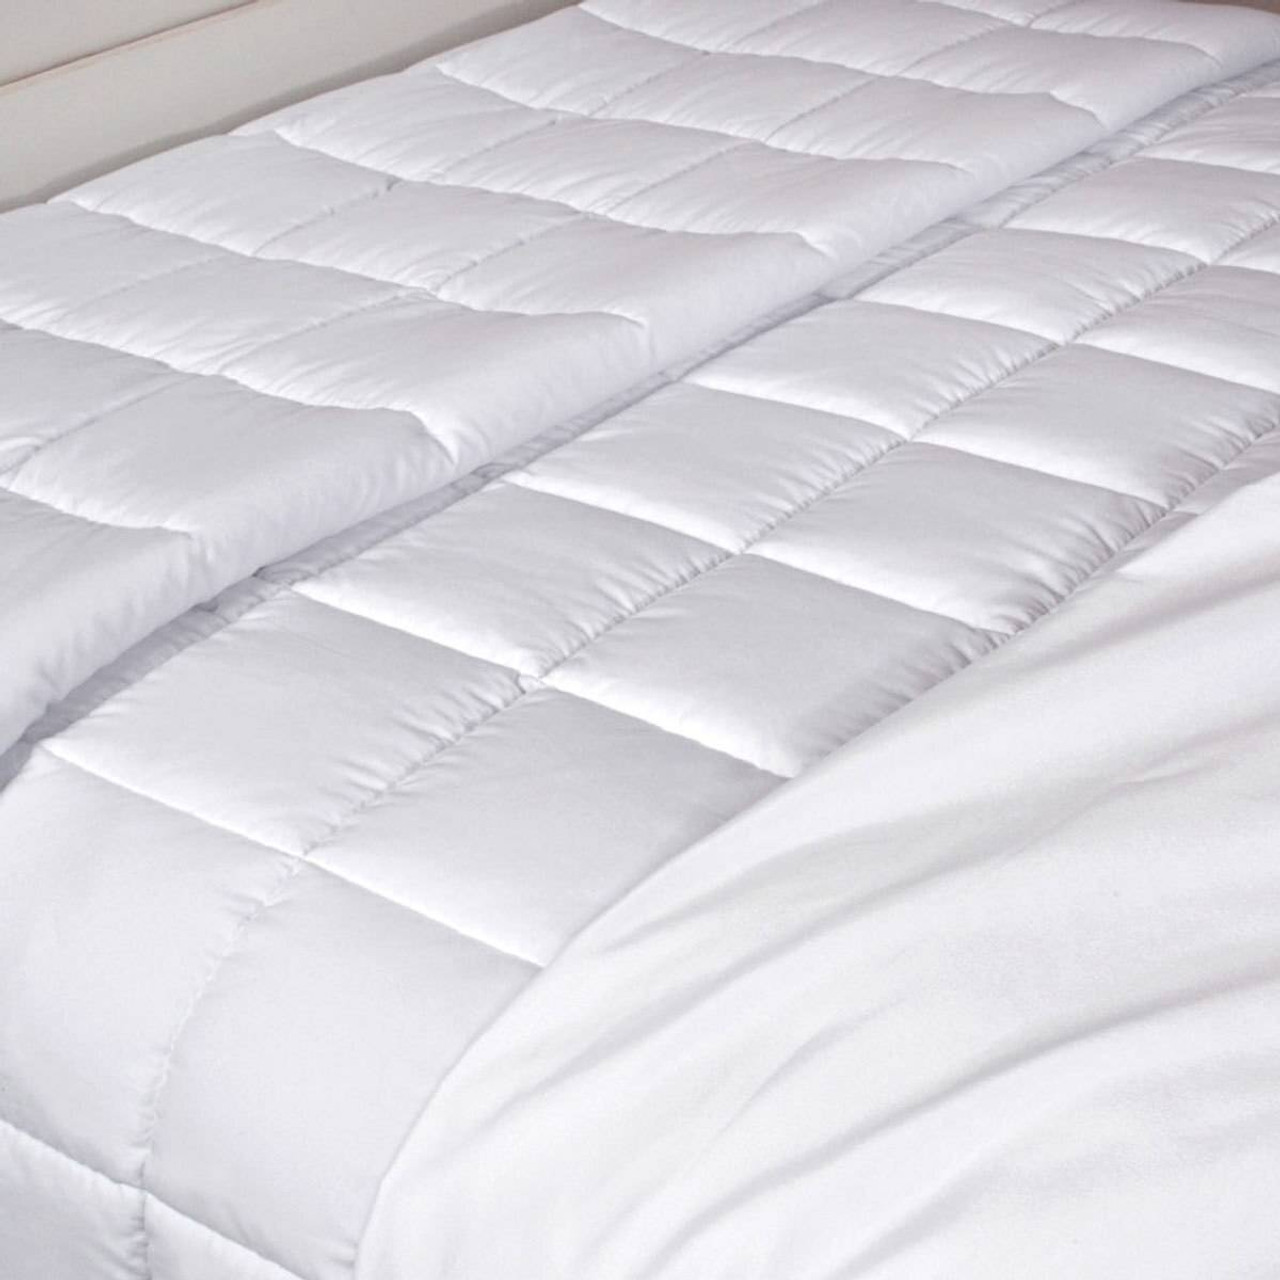 Berkshire Blankets BERKSHIRE or WHITE or EXTRA LONG or ECOLUXE COMFORTERS